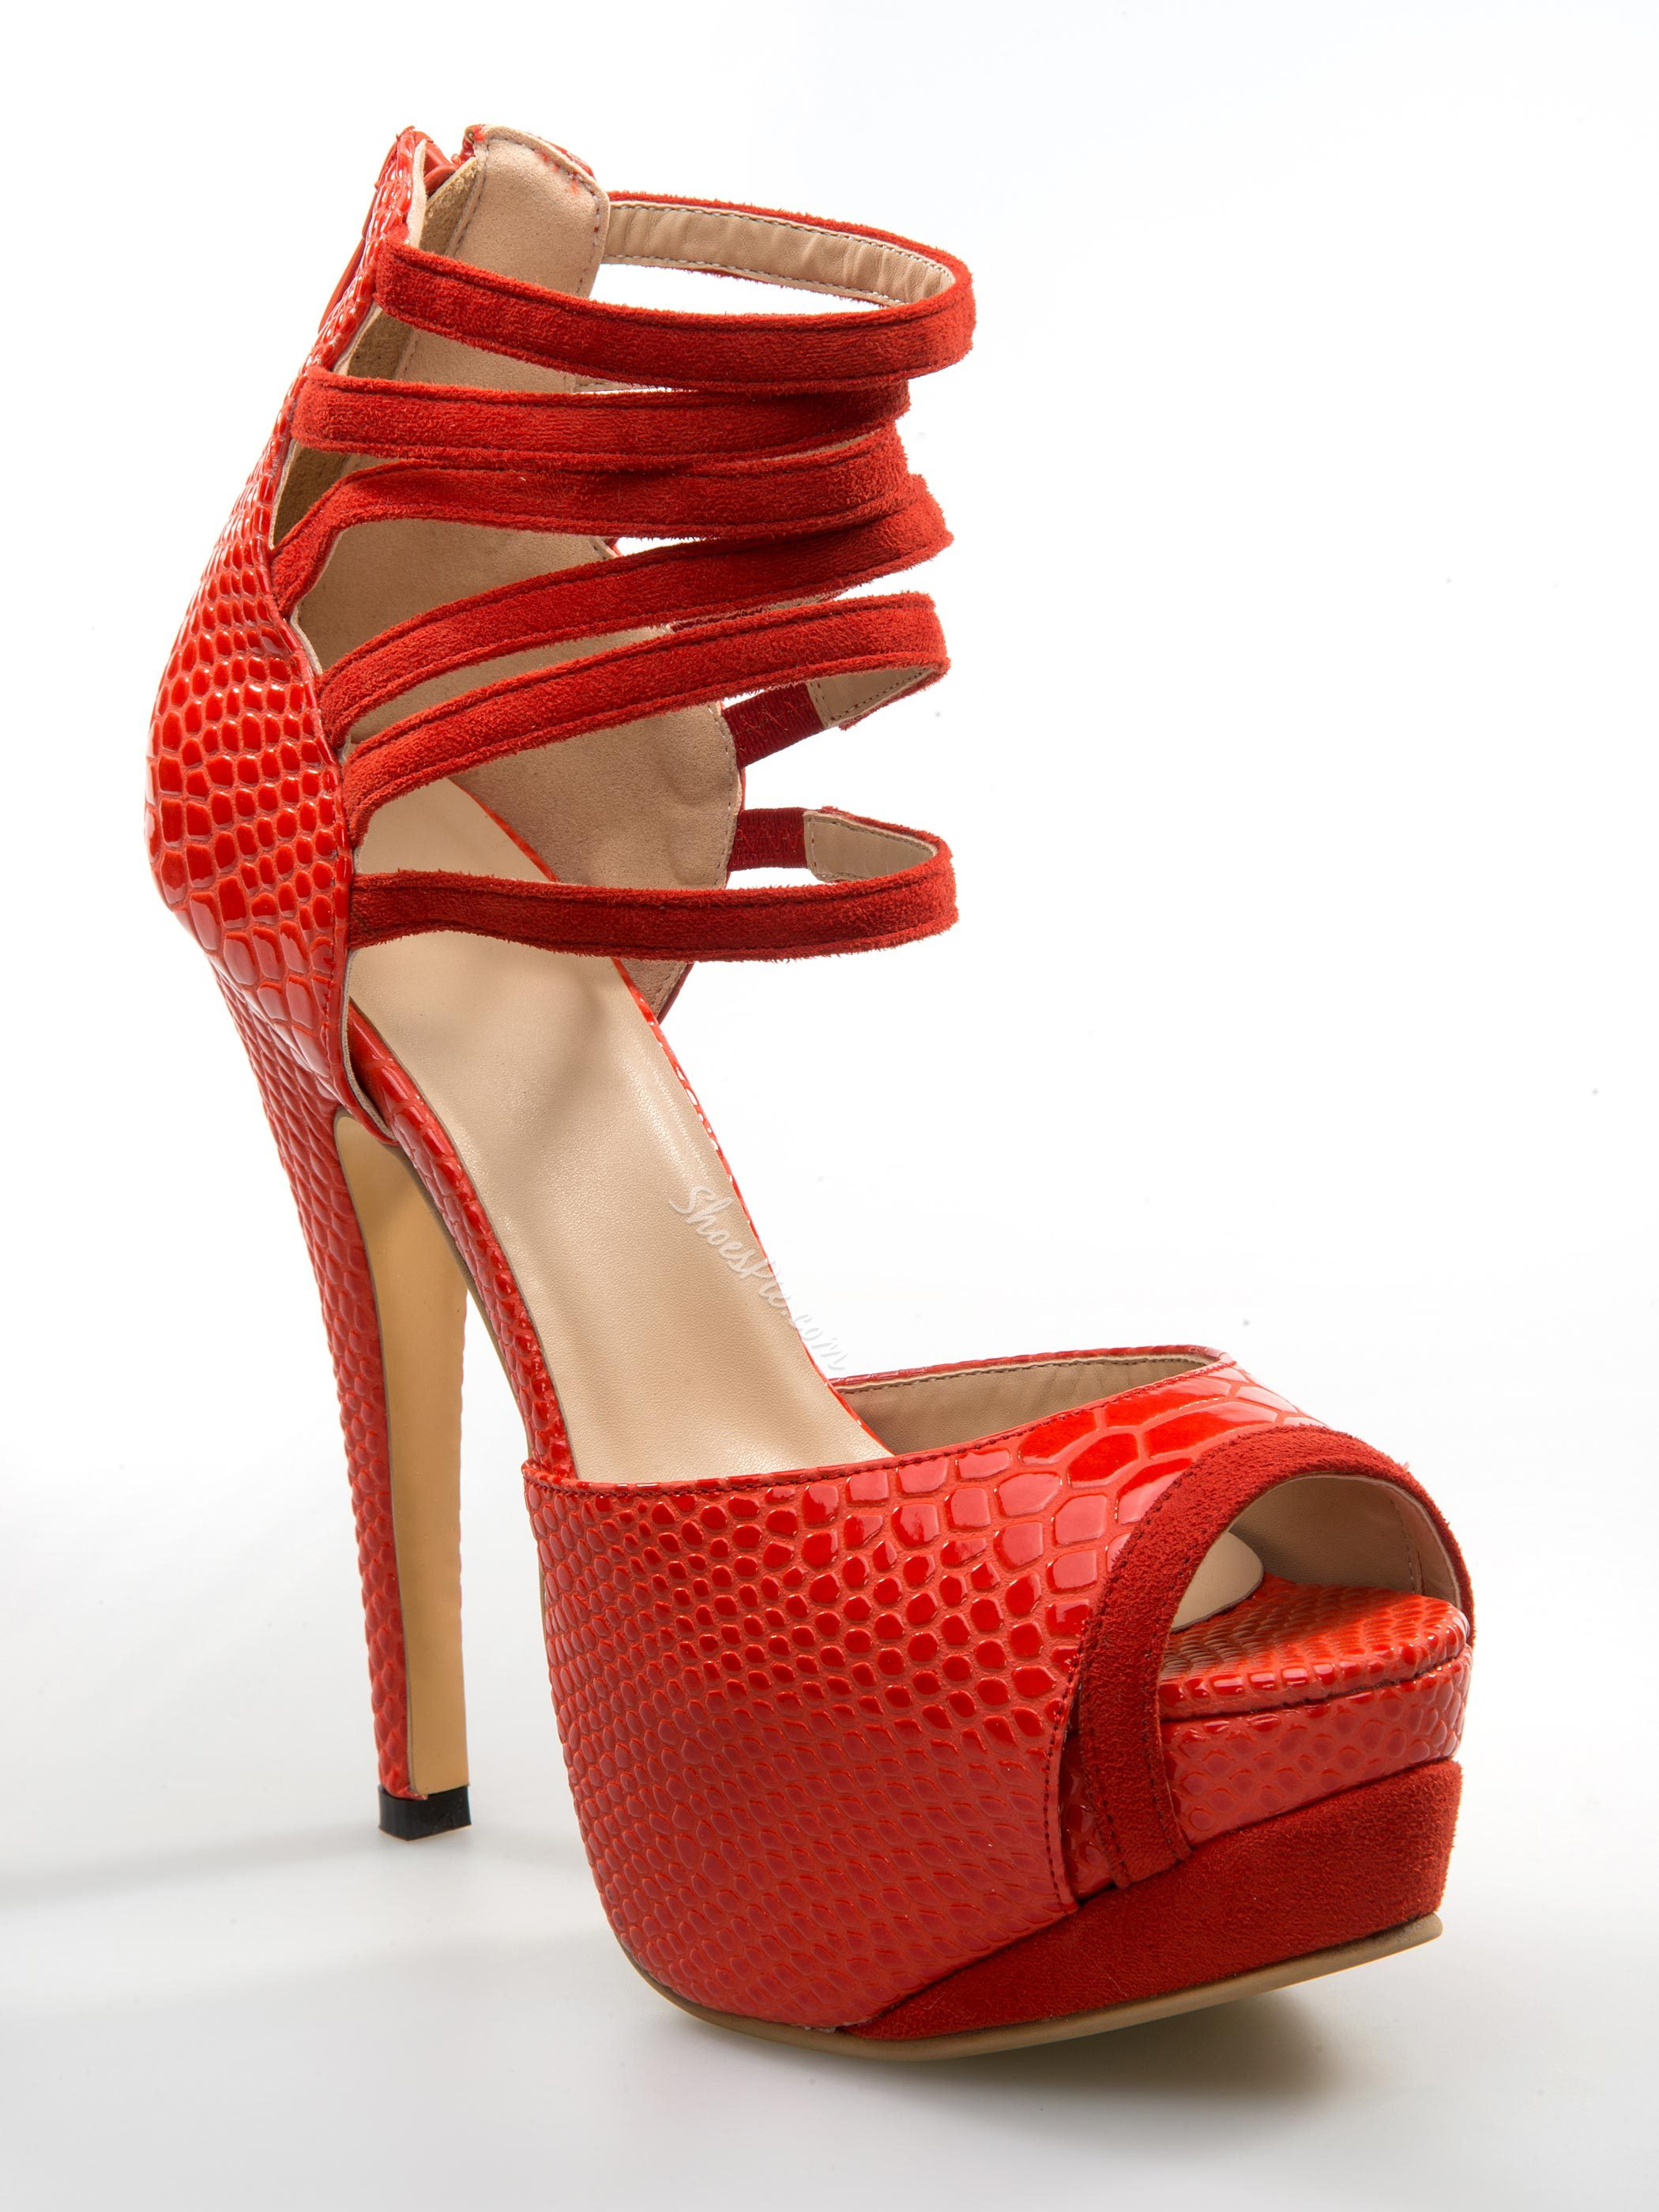 Fashionable Red Copy Leather Platform Heels